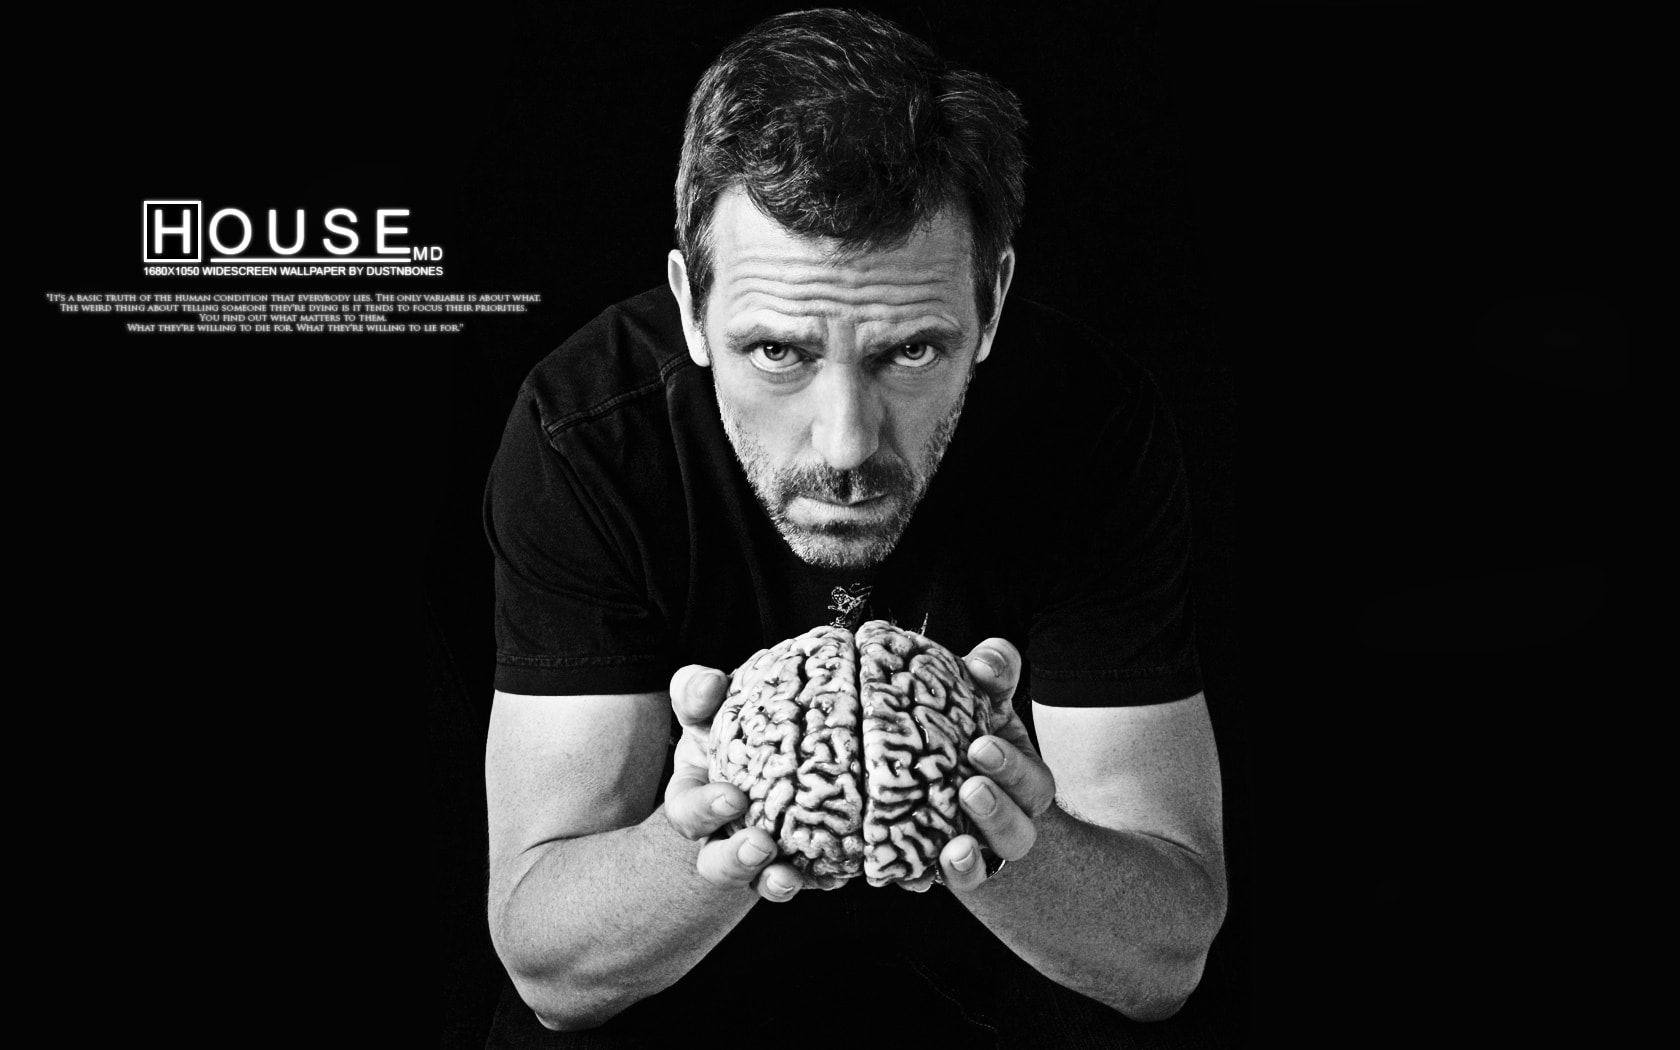 House M.d. Desktop wallpapers